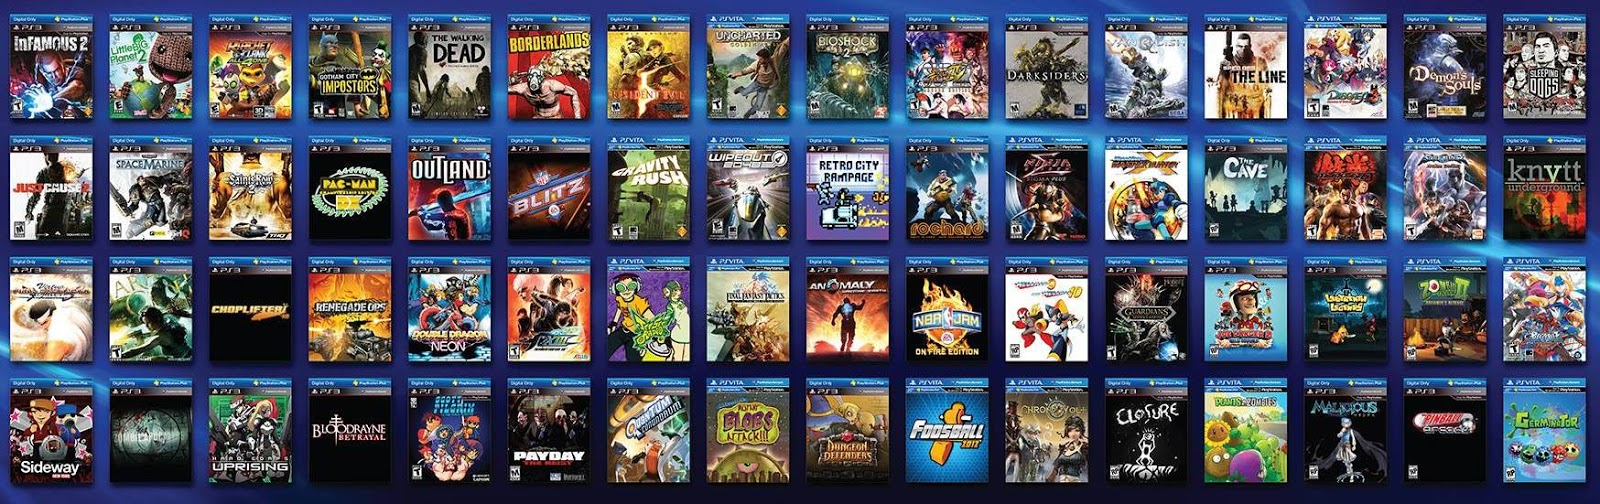 vita - Download All PSVITA Games in Torrent